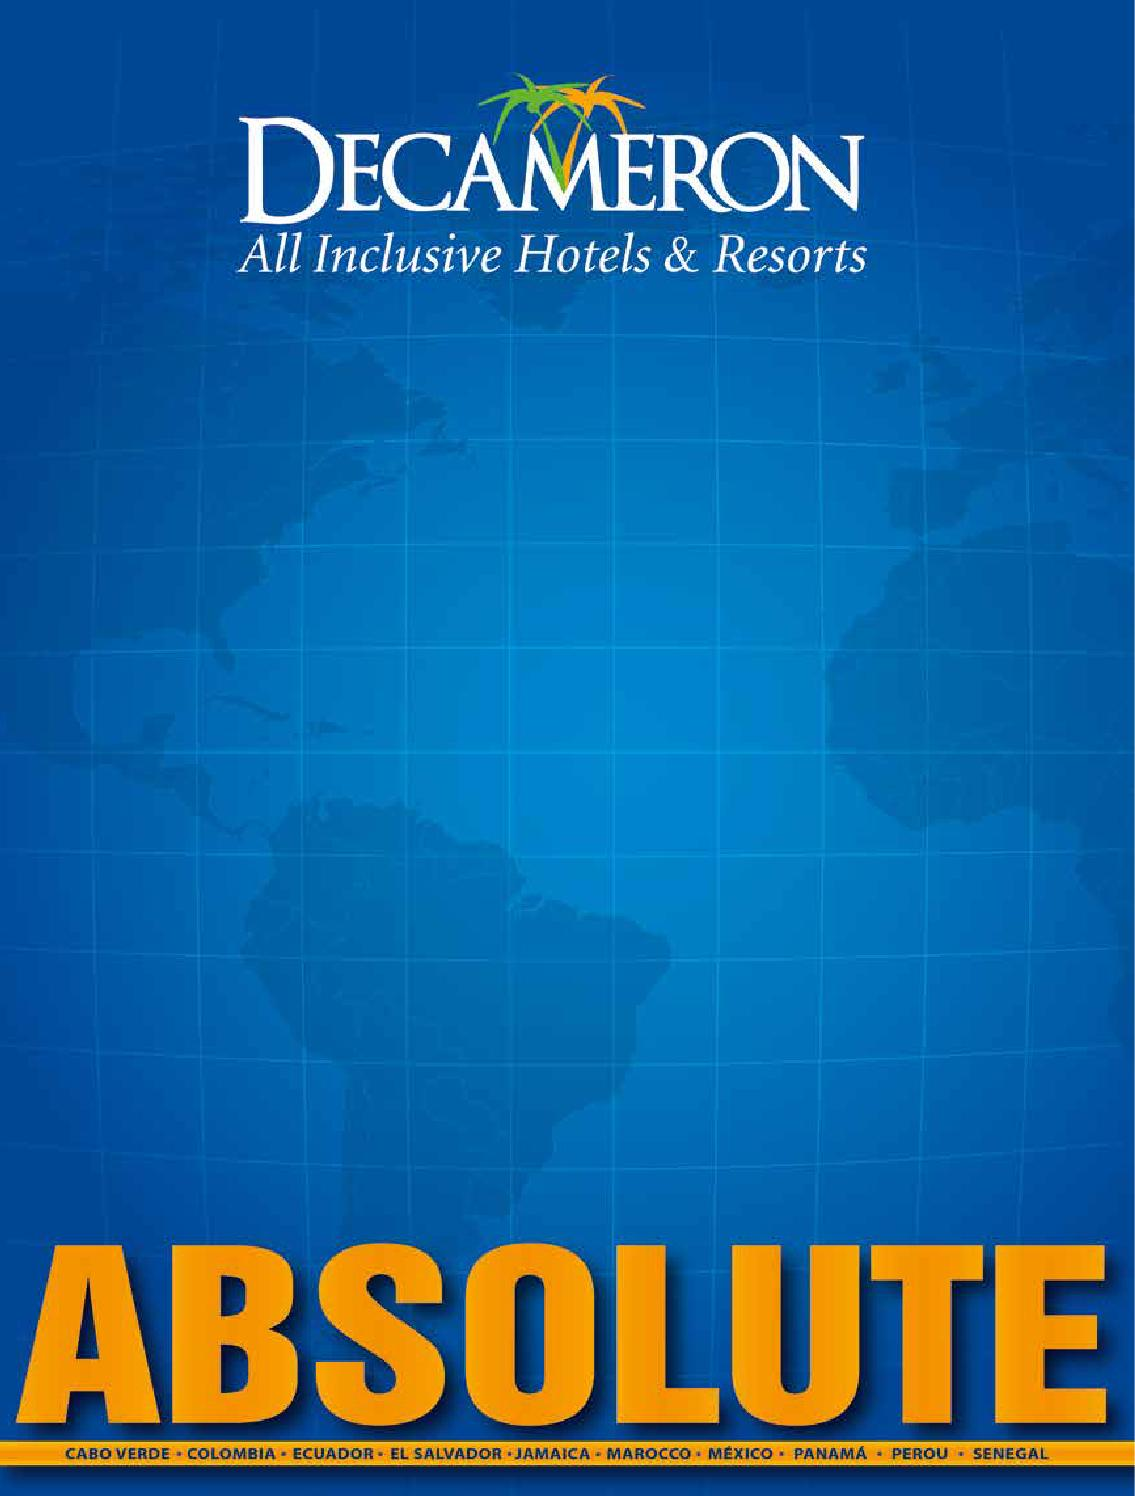 COM - Absolute Decameron by Hoteles Decameron - issuu